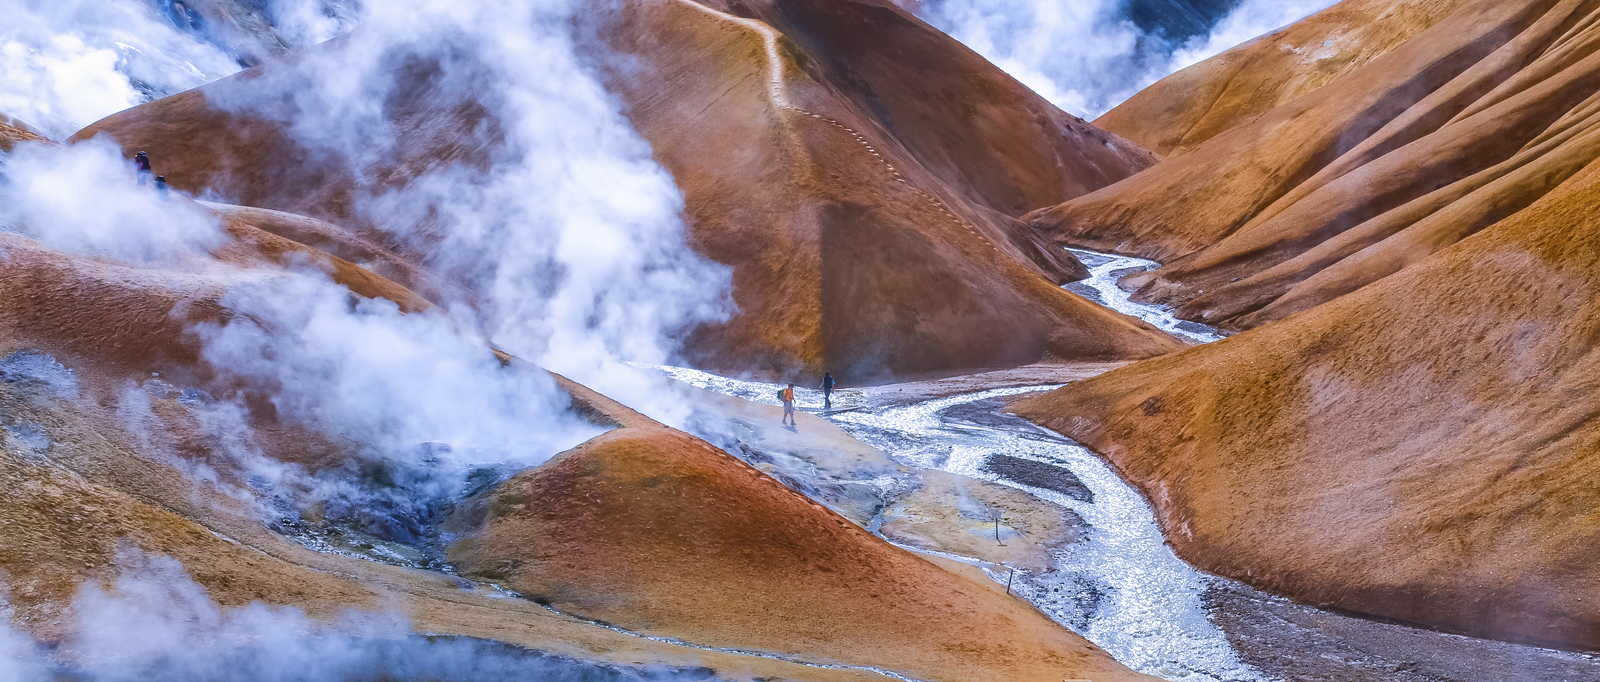 Geothermal smoking field with people, Kerlingafjoll